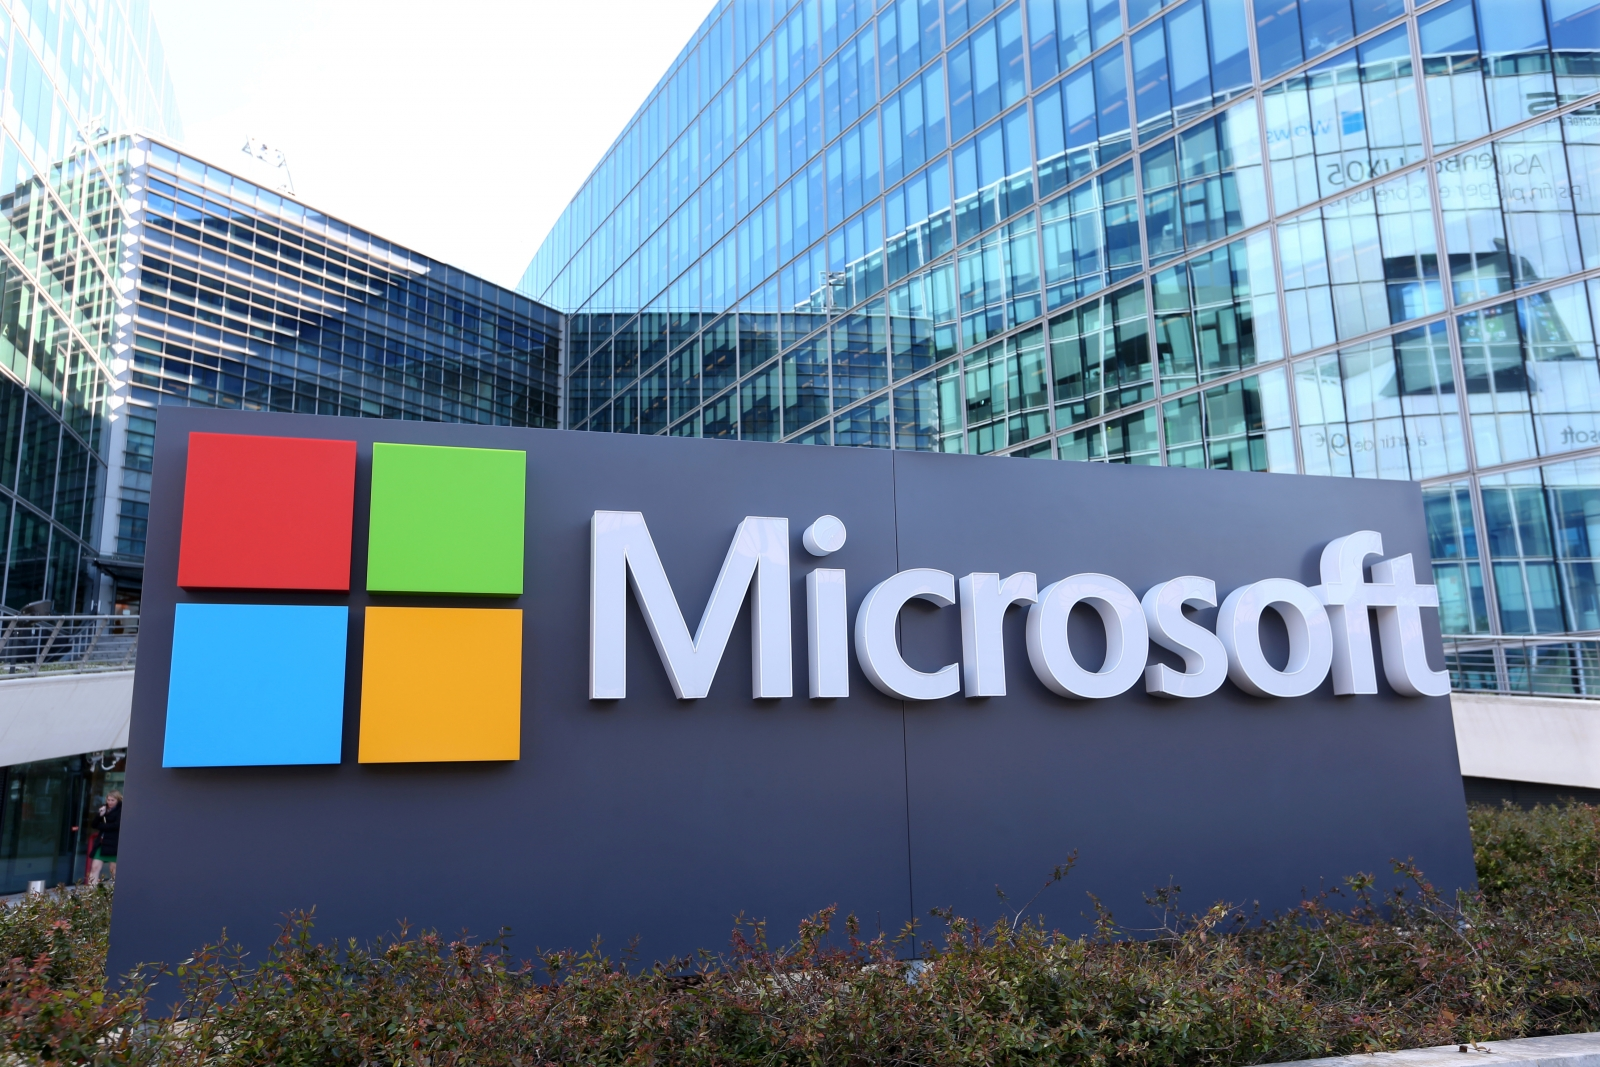 Microsoft's largest debt insurance 2017, sells $17 Billion in bonds